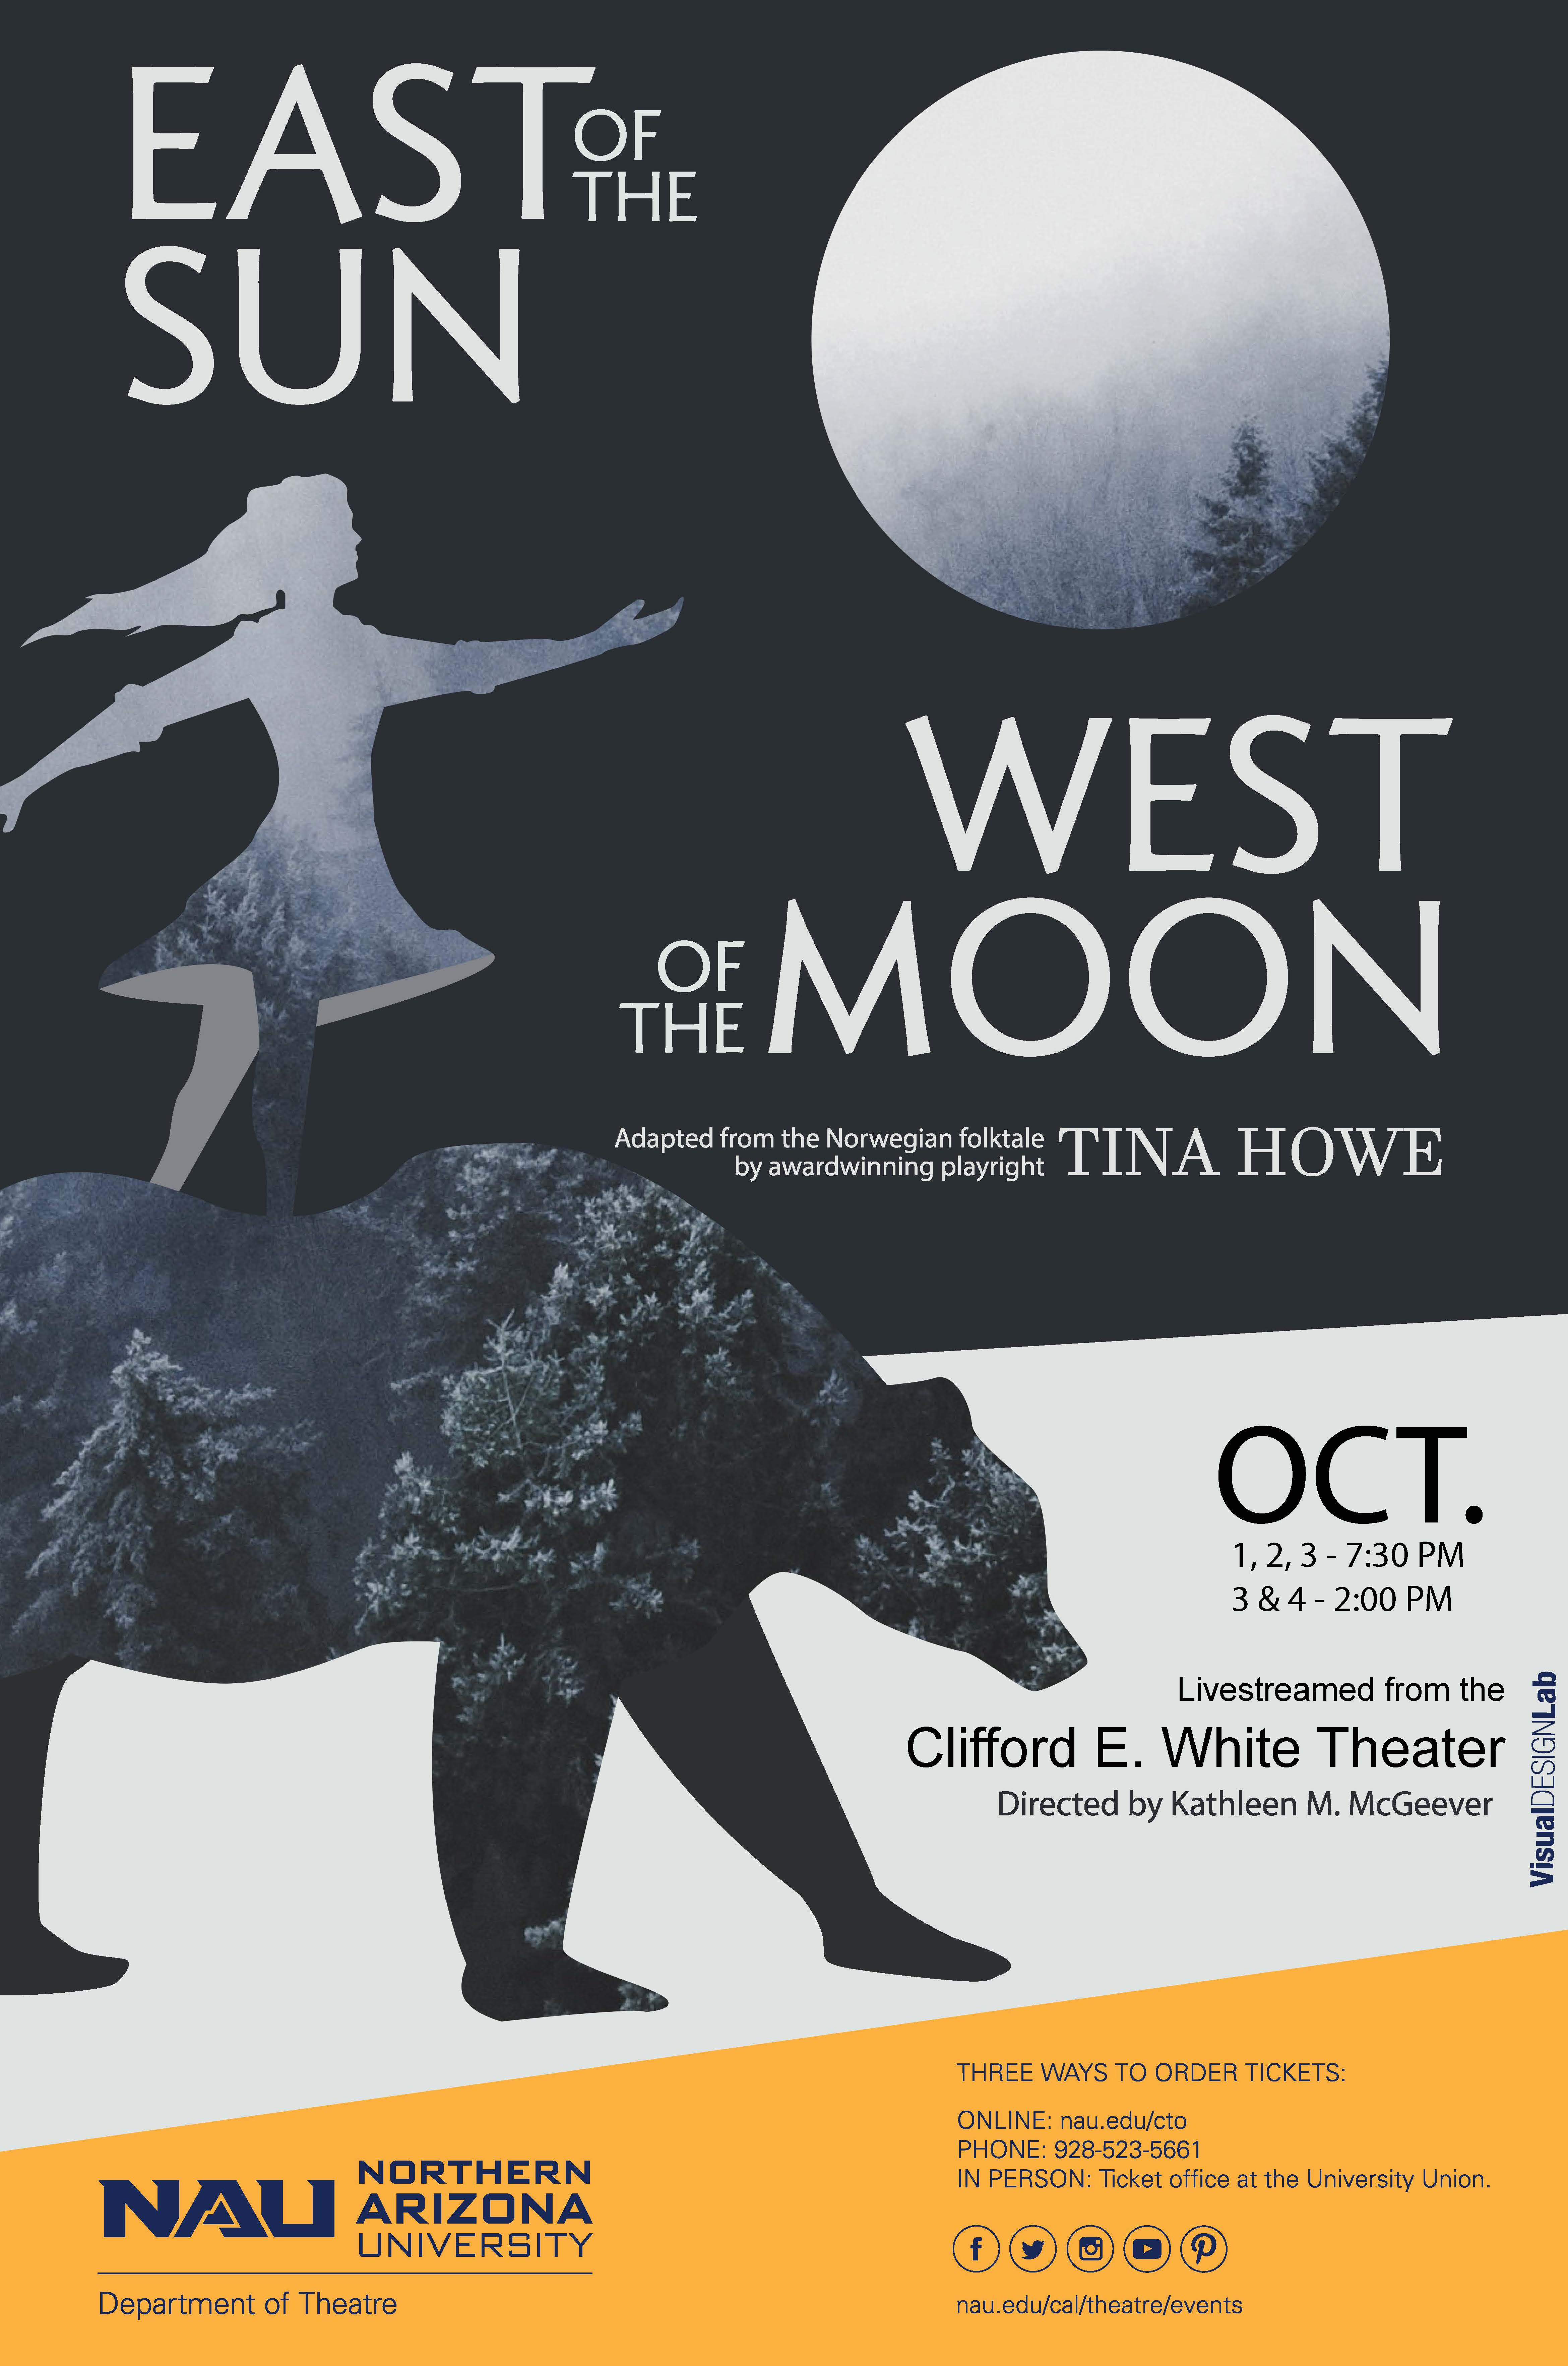 East of the Sun, West of the Moon flier